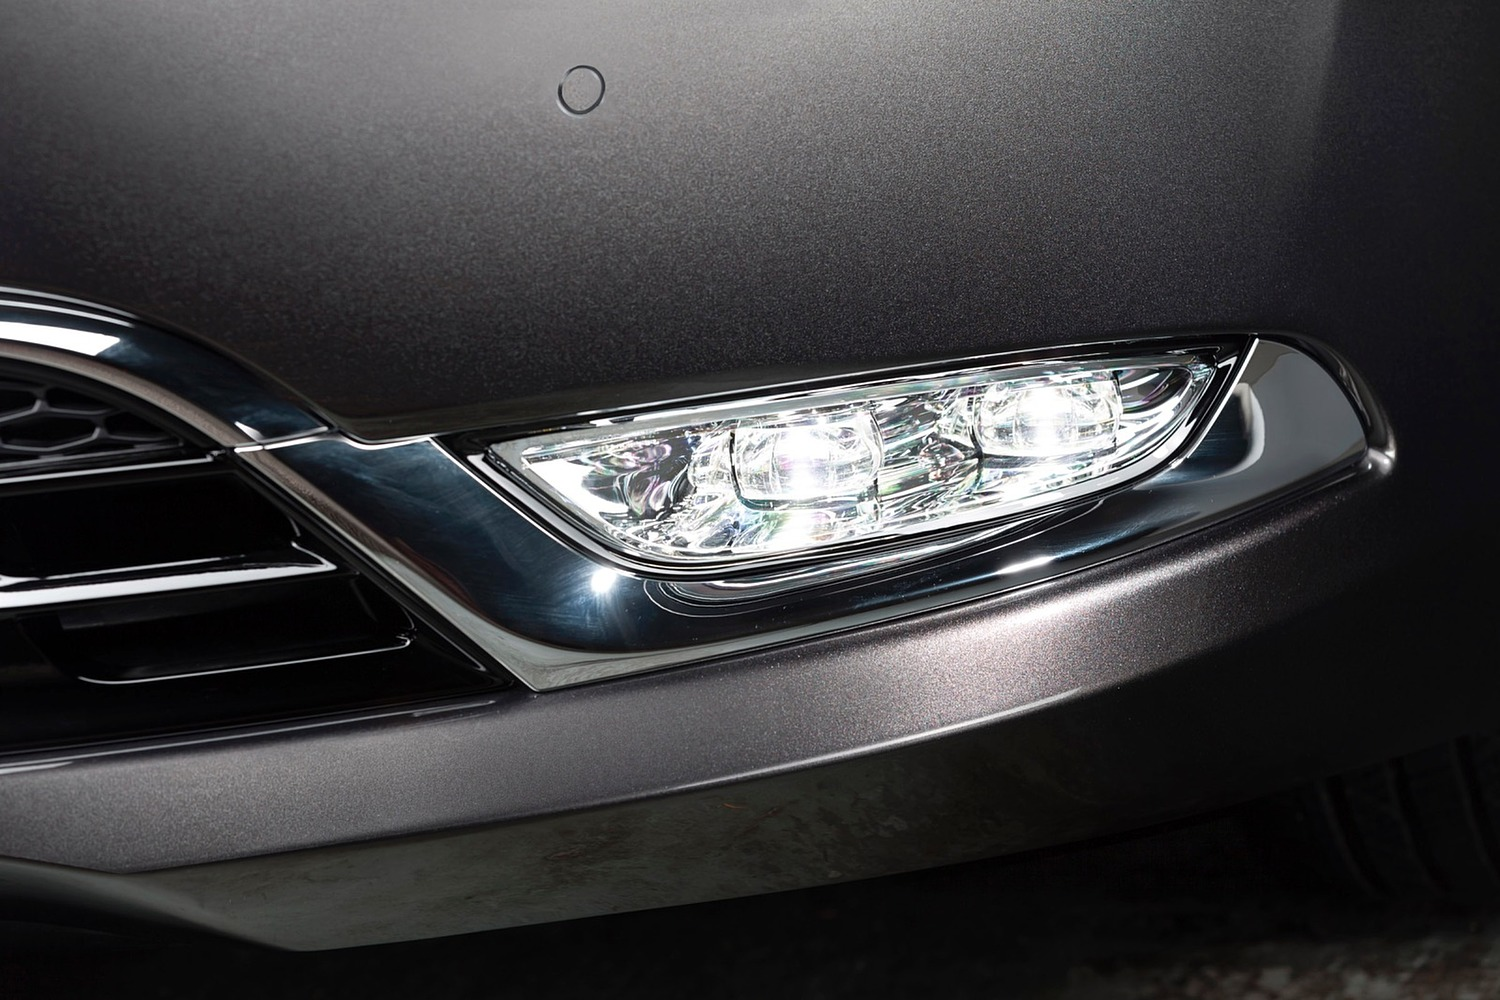 Chrysler 200 C Sedan Fog Light (2015 model year shown)